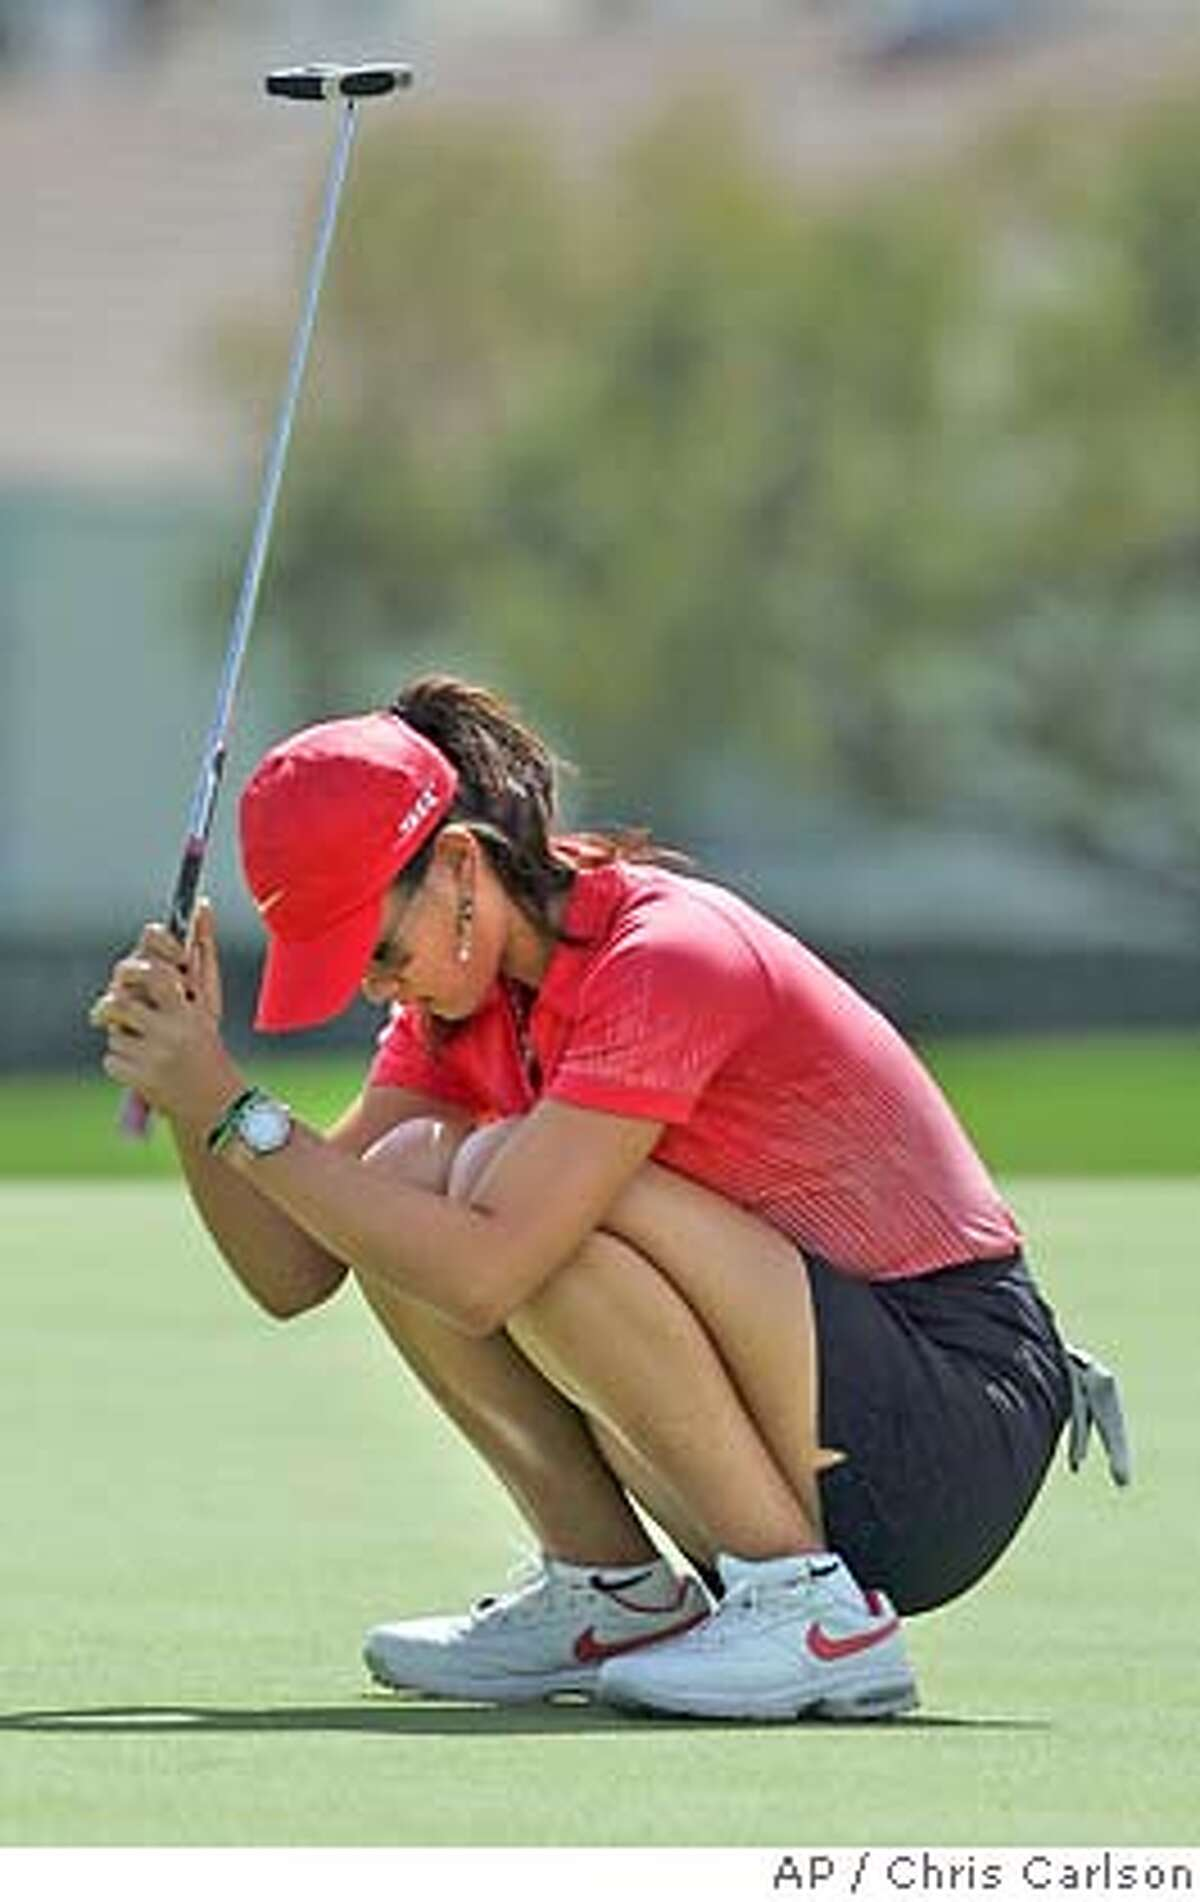 Michelle Wie, left, reacts after failing to make the playoff on the the 18th green during the final round of the Kraft Nabisco Championship golf tournament Sunday, April 2, 2006, at Mission Hills Country Club, in Rancho Mirage, Calif. (AP Photo/Chris Carlson)